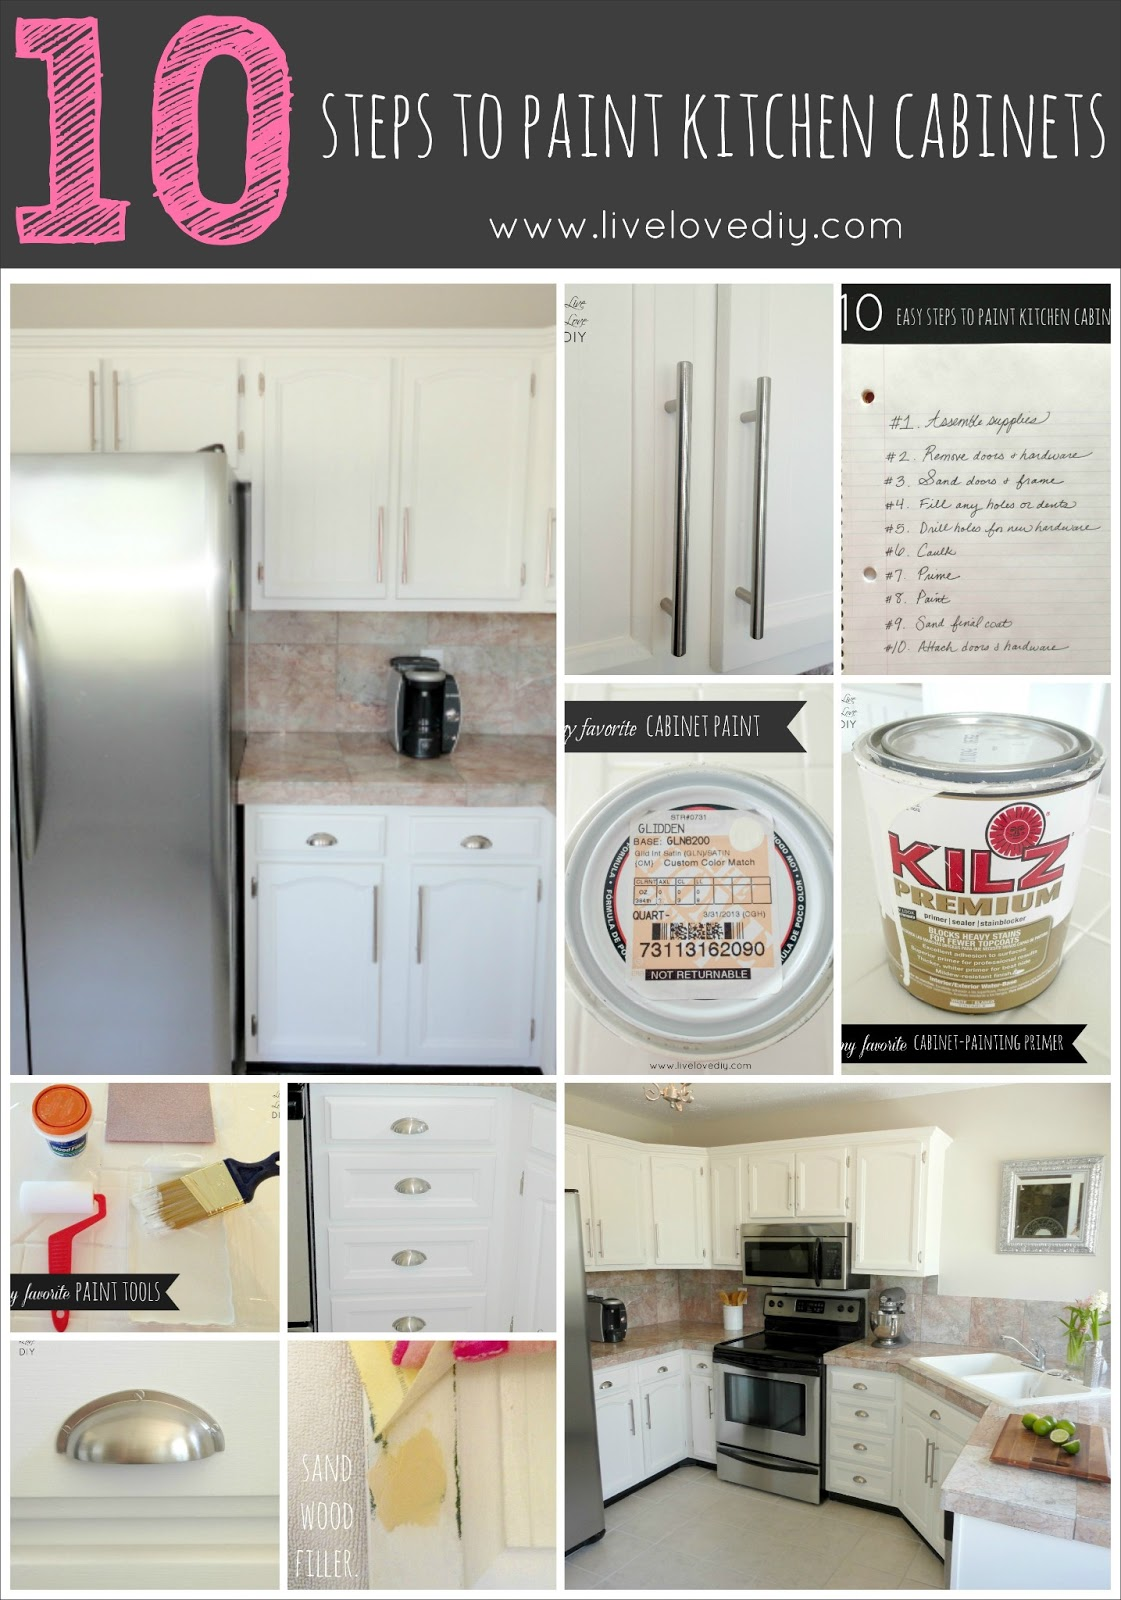 Painting Inside Kitchen Cabinets Livelovediy How To Paint Kitchen Cabinets In 10 Easy Steps